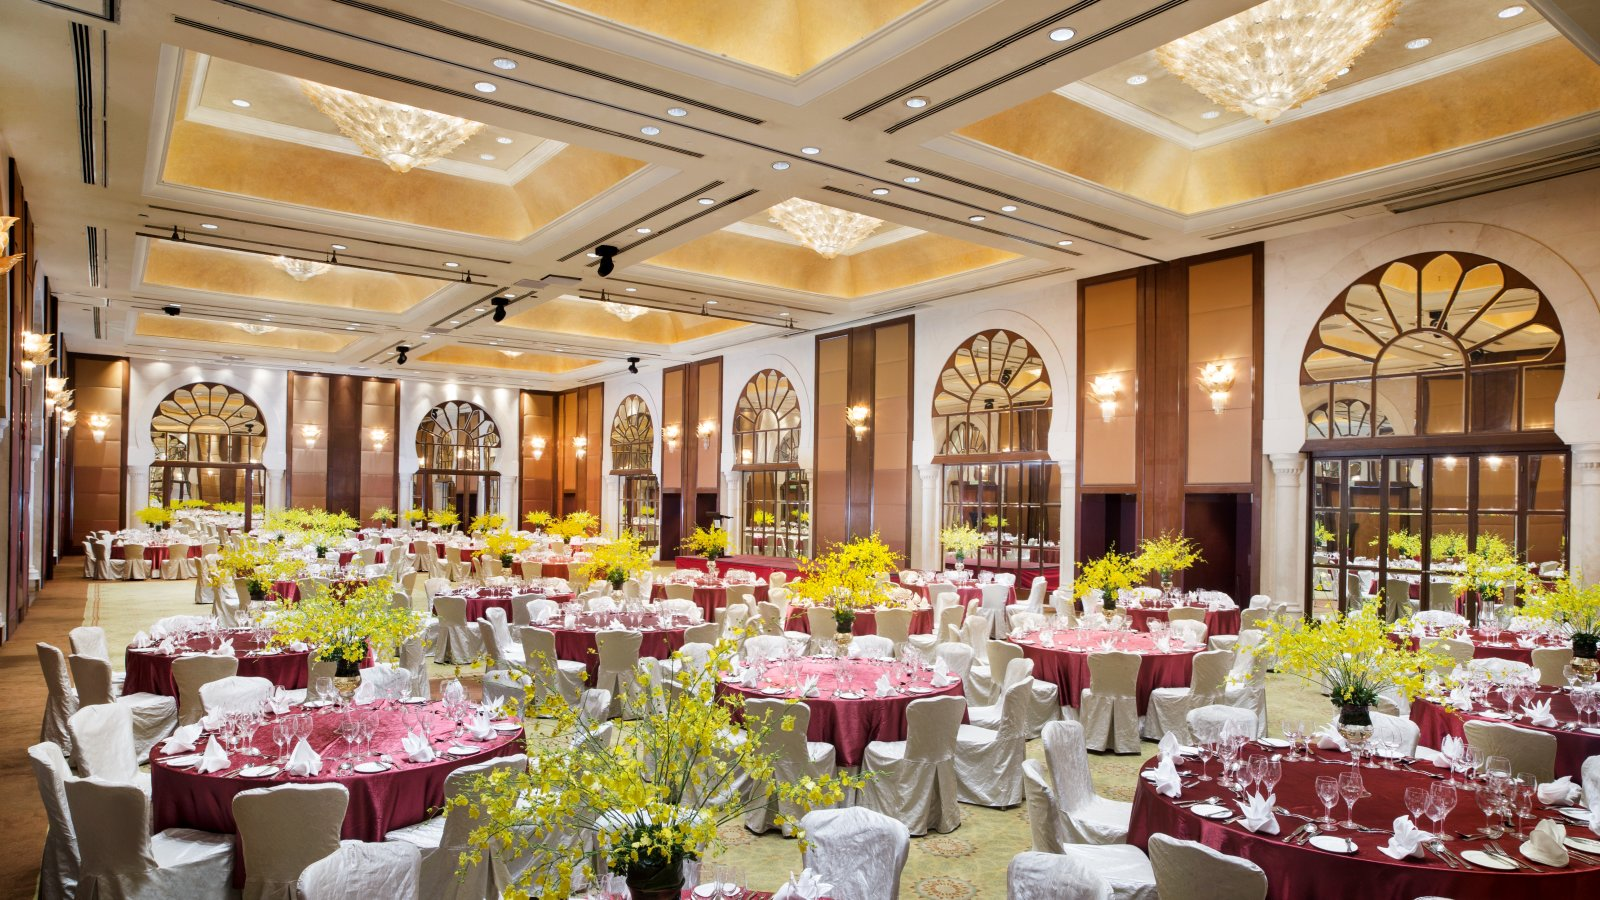 The 10 most expensive places in kl for your wedding dinner sheraton imperial kuala lumpur everlasting wedding package junglespirit Image collections